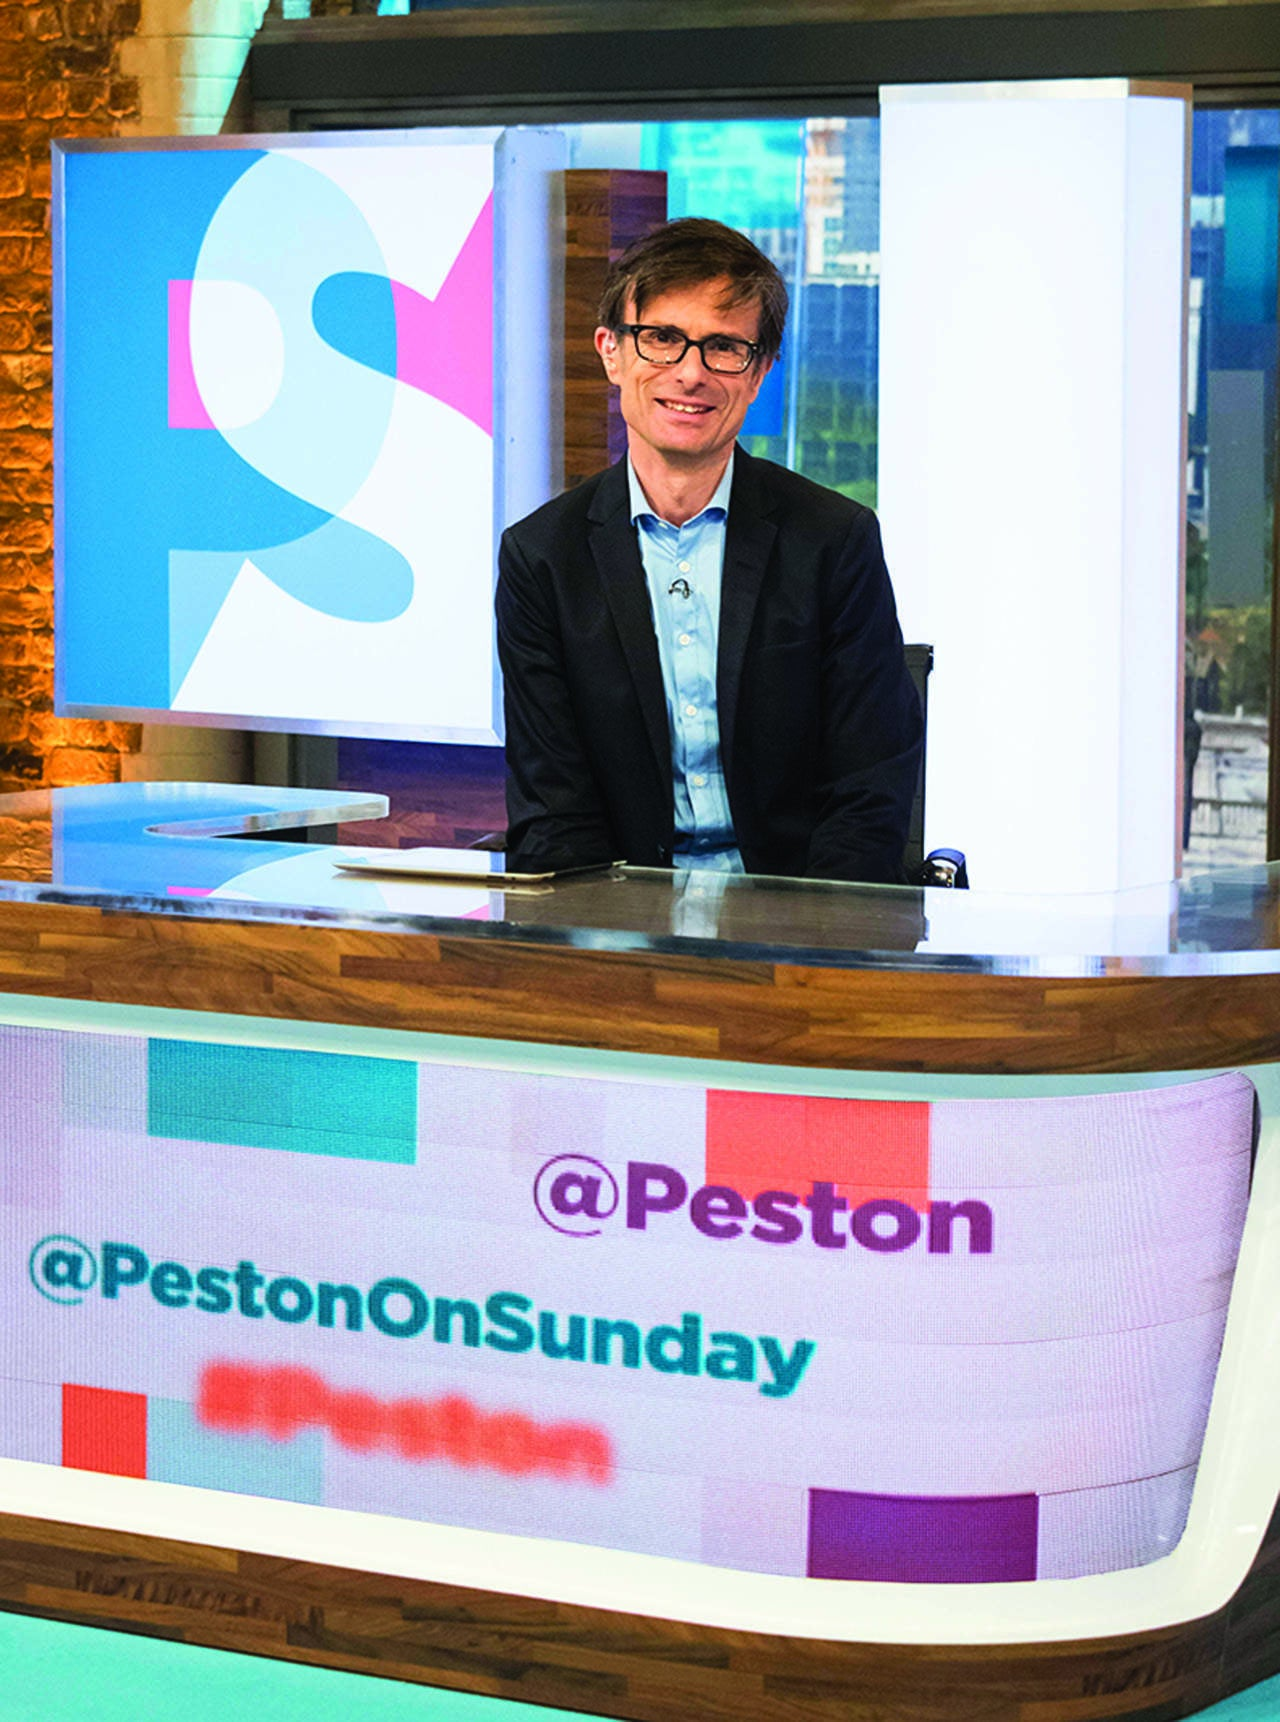 Peston on Sunday seems to respect politicians more than other species of human